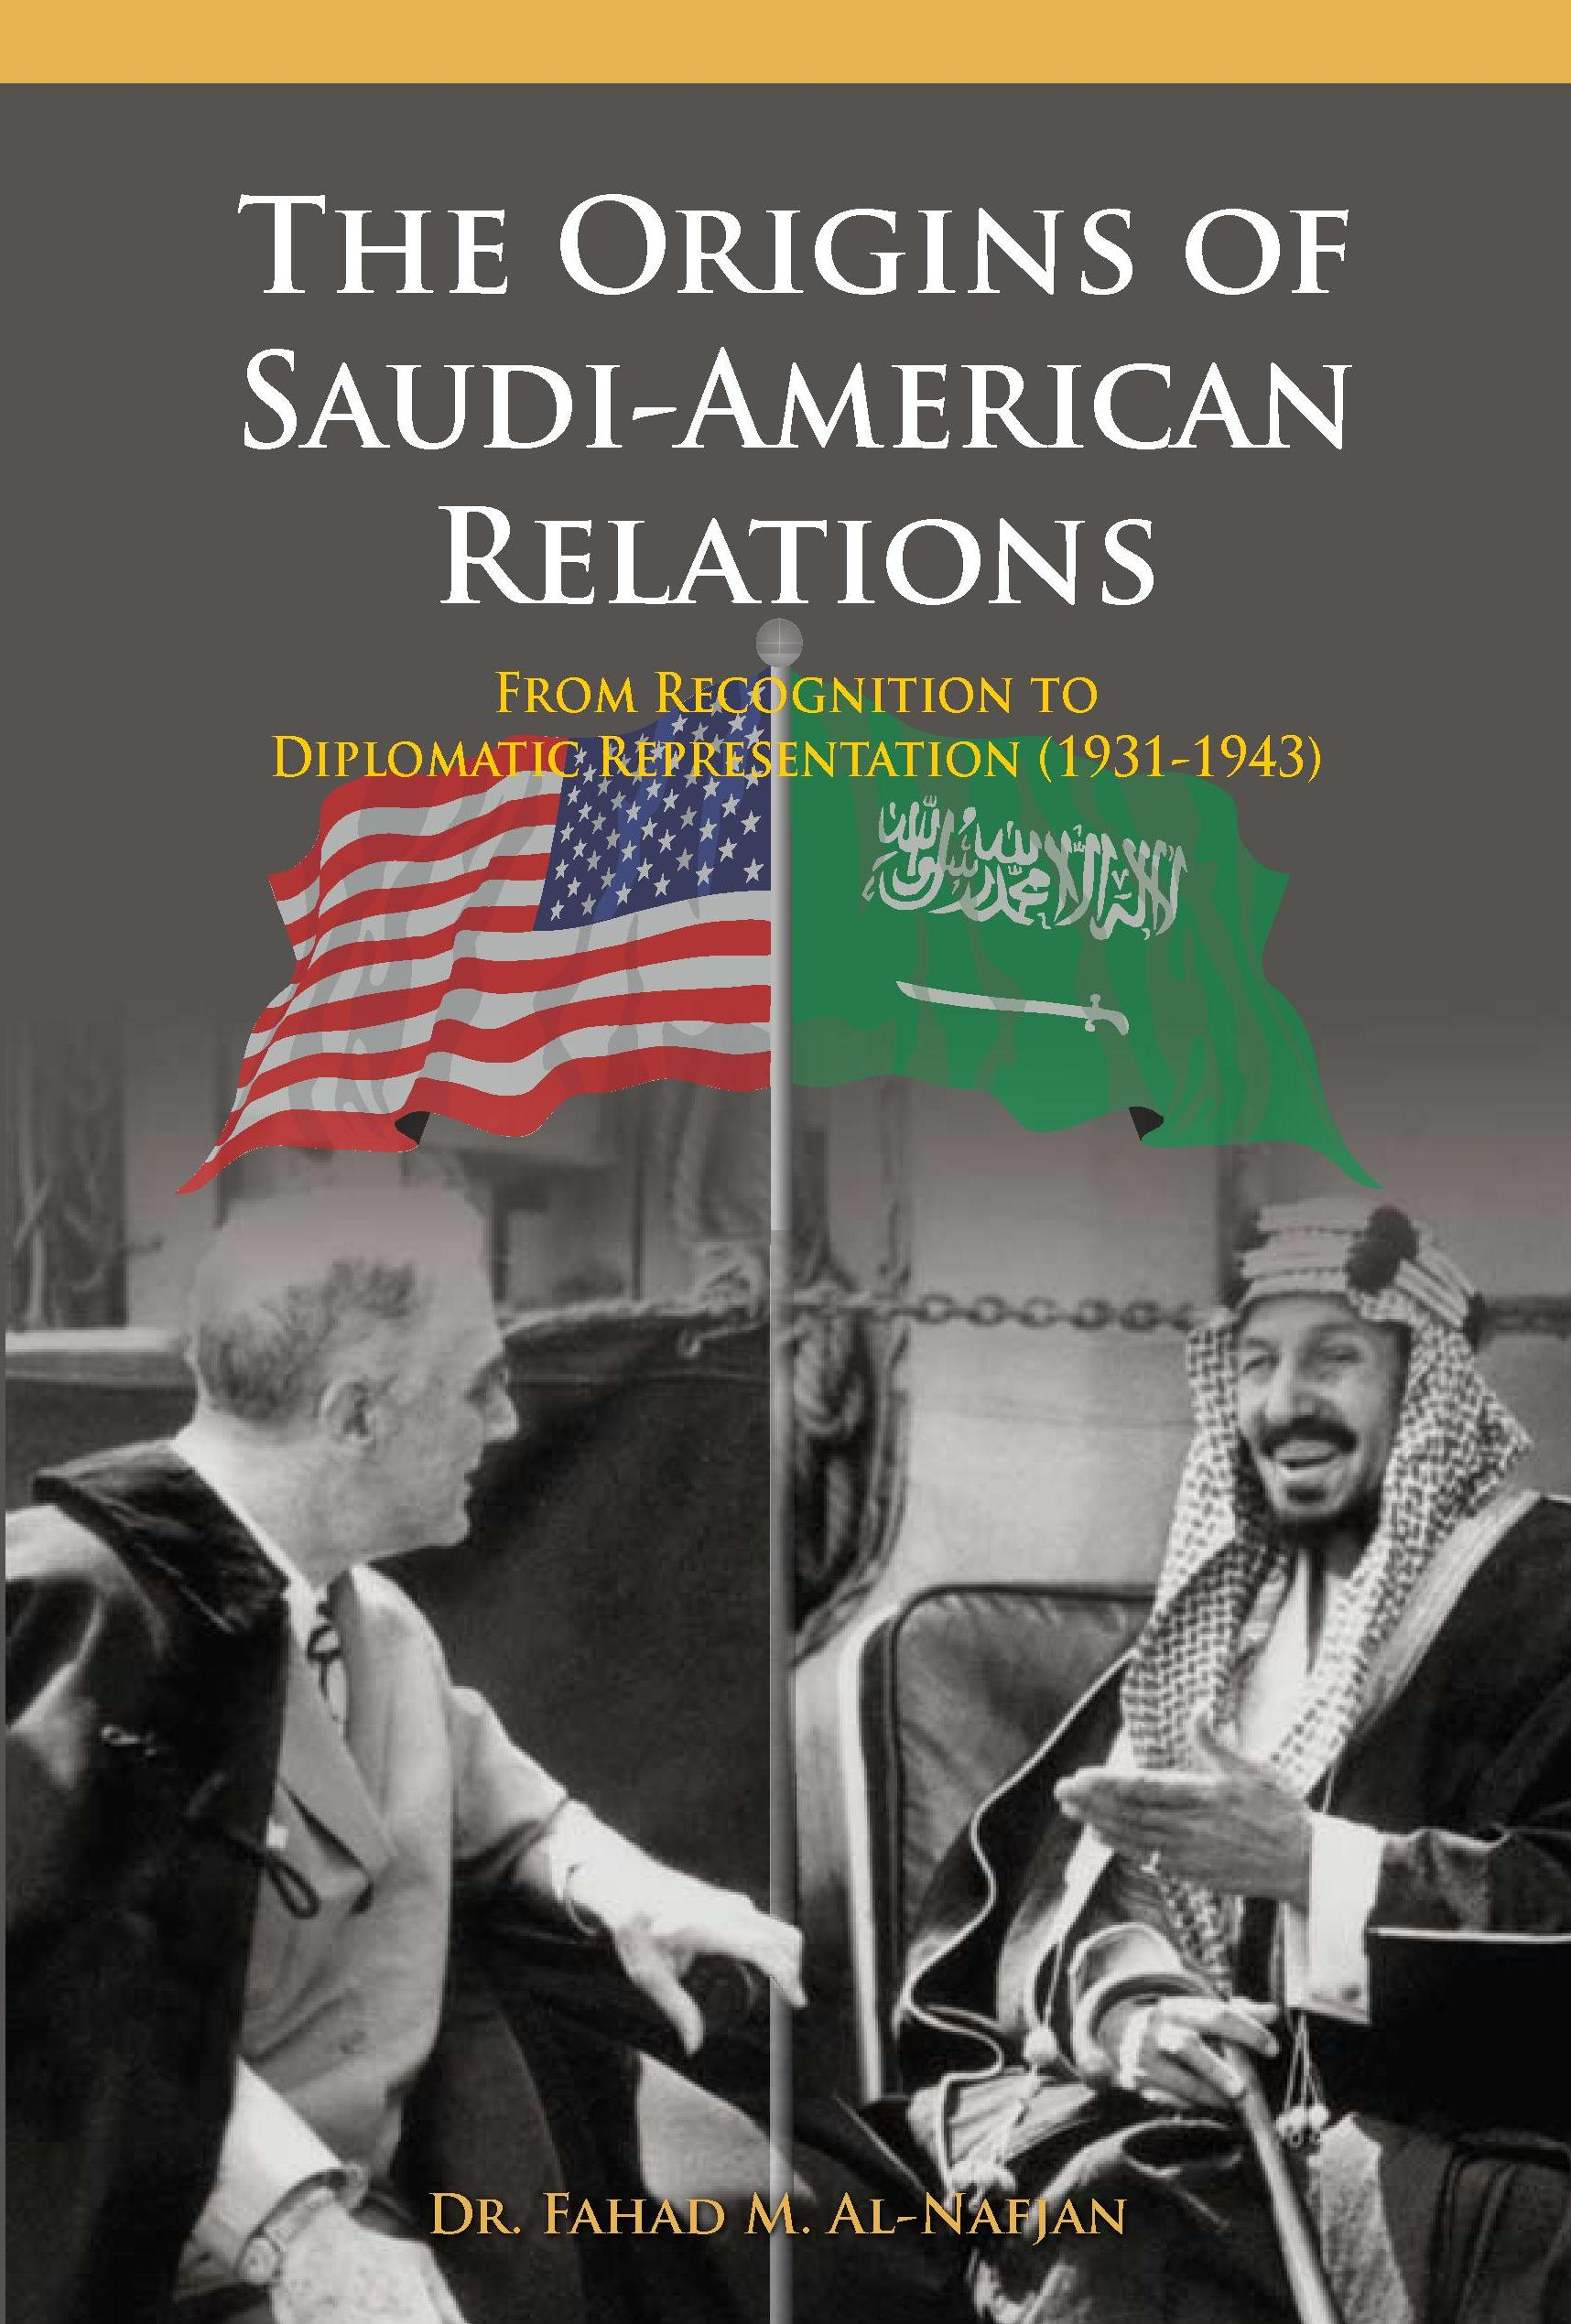 american saudi relations essay Saudi arabia and the united states have a relationship that stretches back  almost a century, since the 1933 kickoff of oil exploration in the.